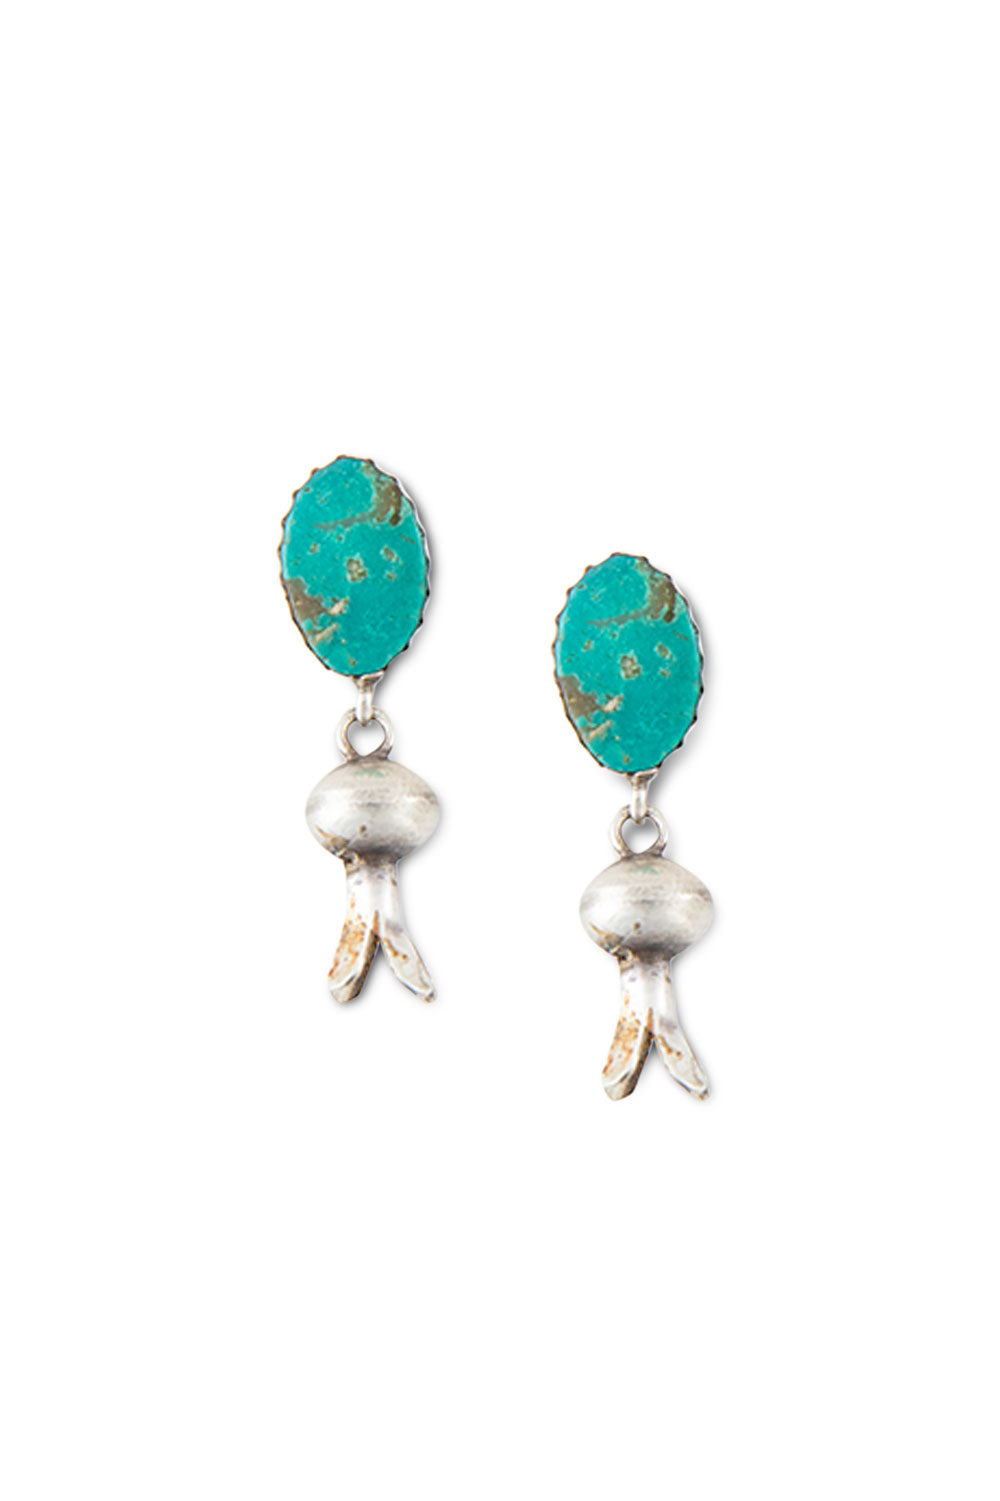 Earrings, Blossom, Turquoise, Hallmark, 425